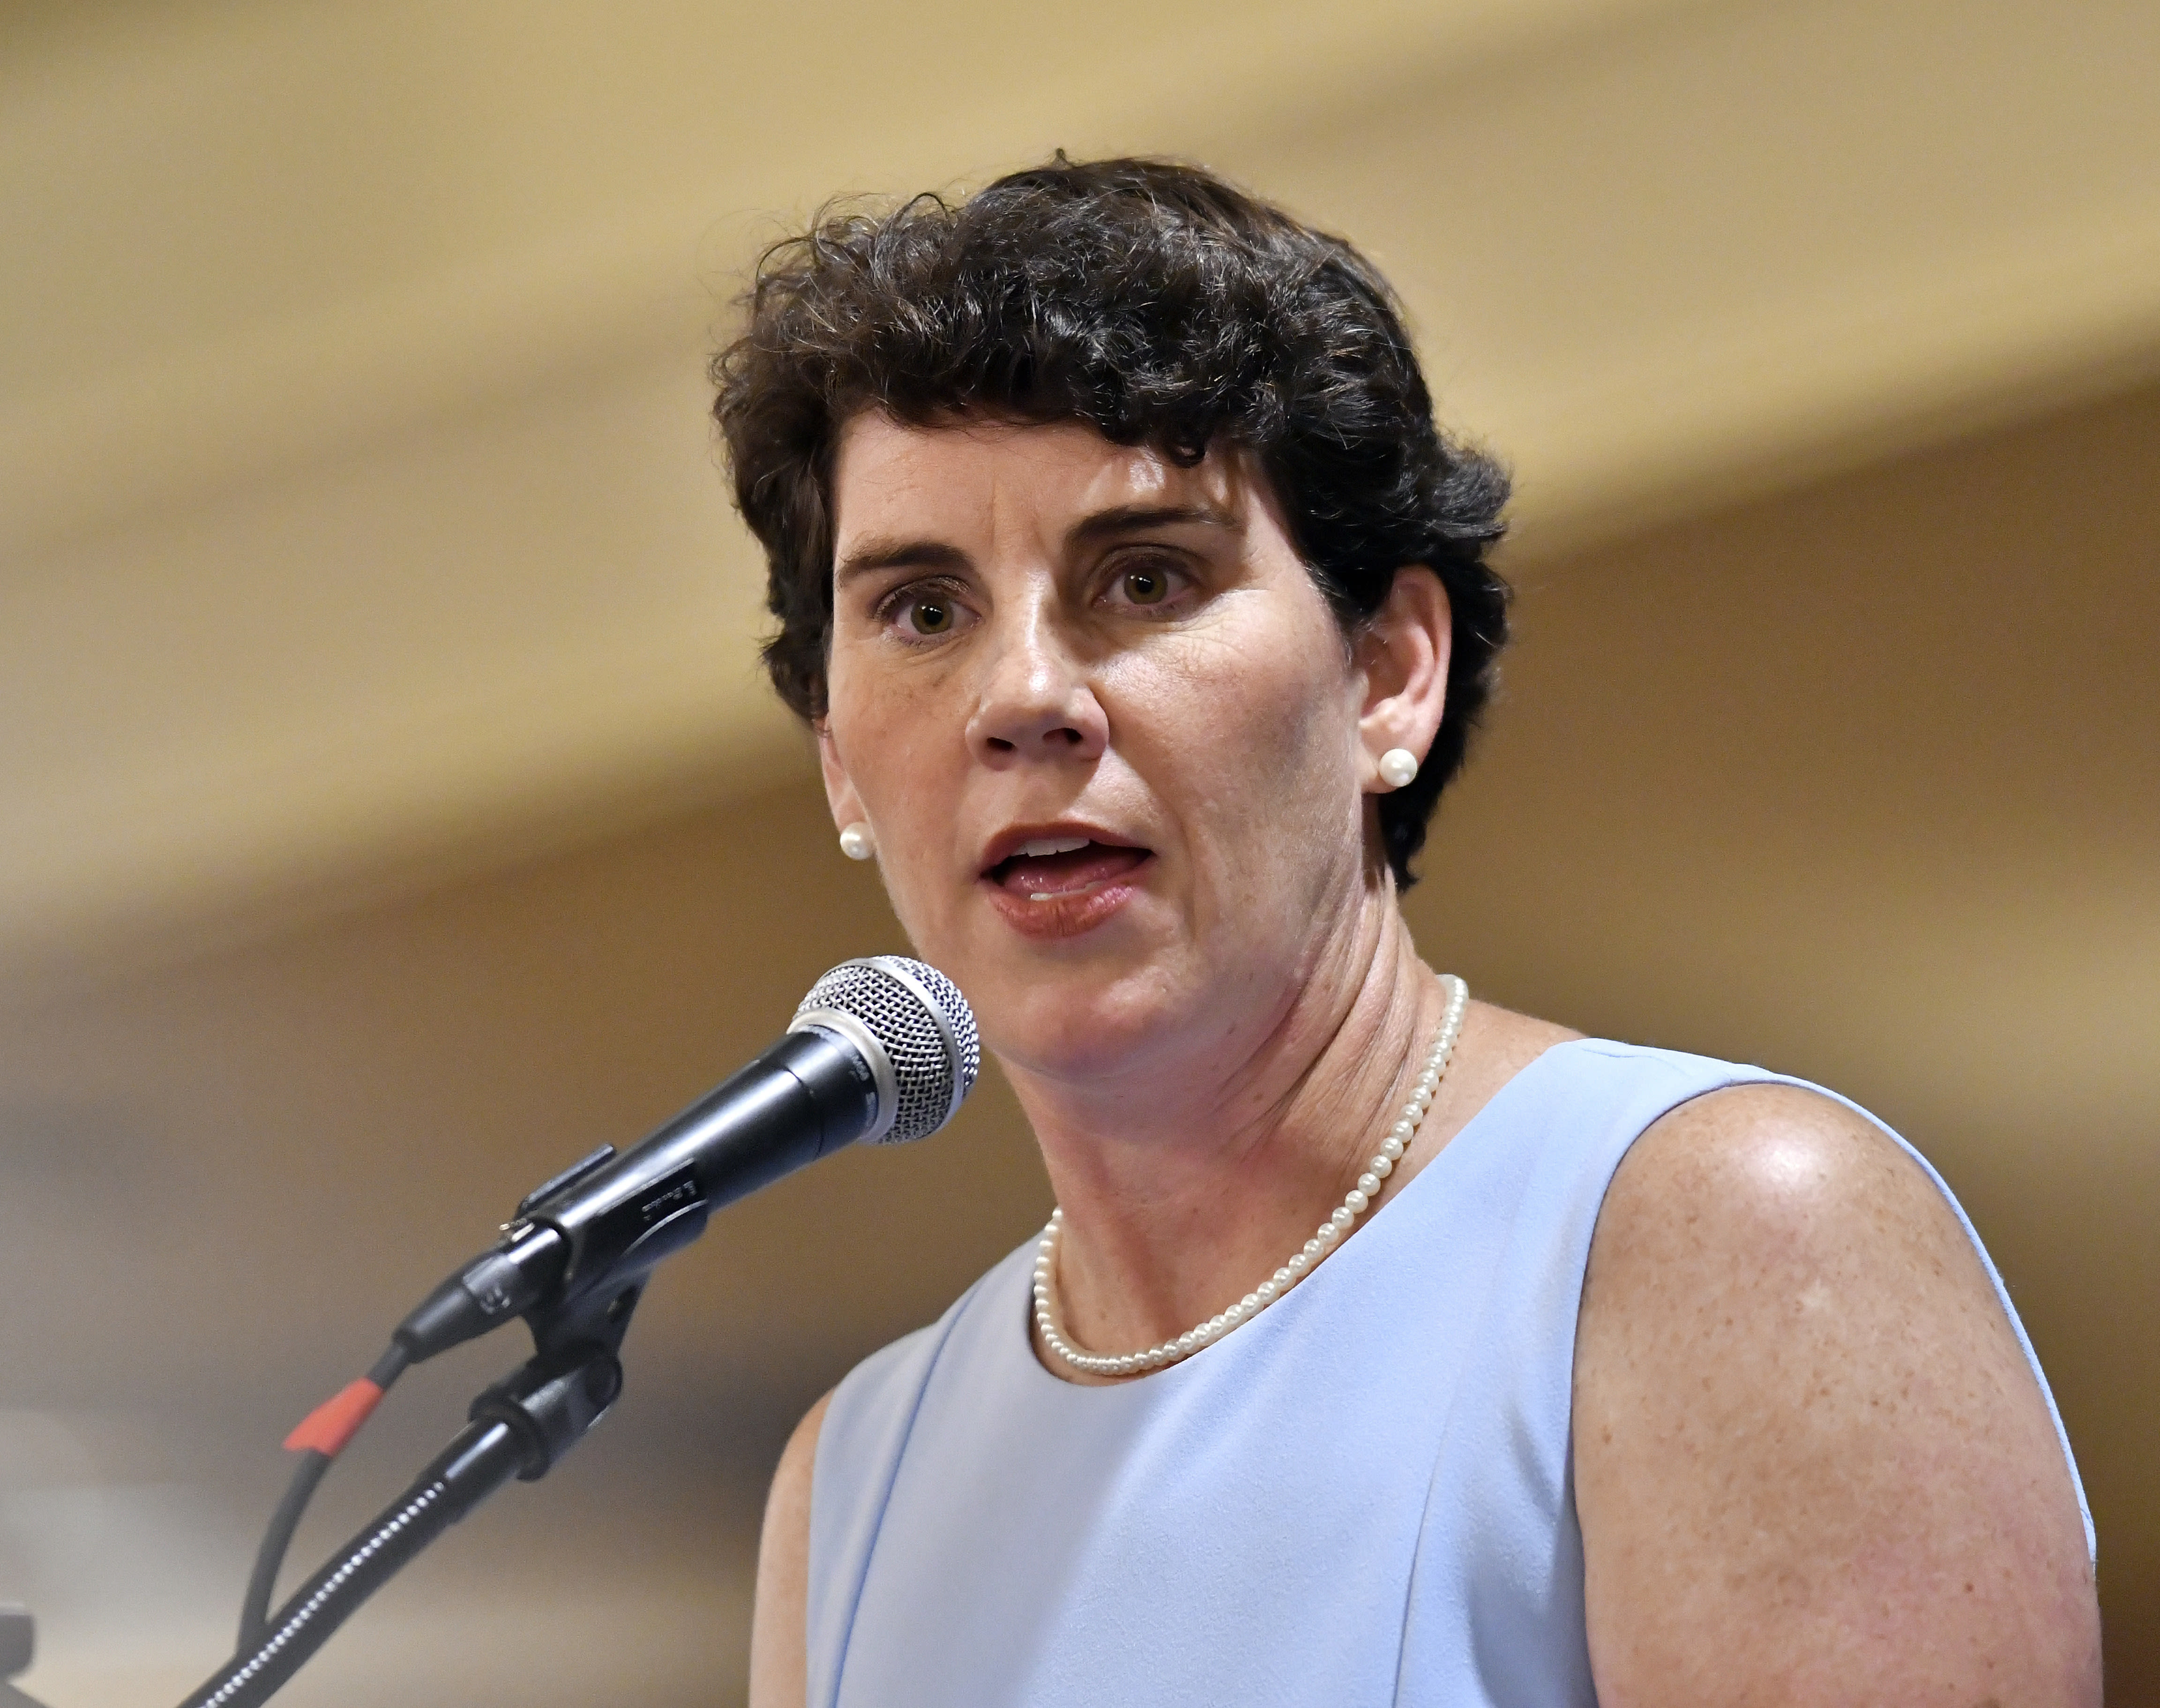 FILE - In this Aug. 18, 2018, file photo, Amy McGrath, a Kentucky Democratic candidate for Congress, speaks to supporters during the 26th annual Wendell Ford Dinner in Louisville, Ky. Democrat Amy McGrath has raised more money than Republican U.S. Rep. Andy Barr in Kentucky's 6th Congressional district. McGrath has raised more than $6 million while Barr has raised more than $4 million. (AP Photo/Timothy D. Easley, File)